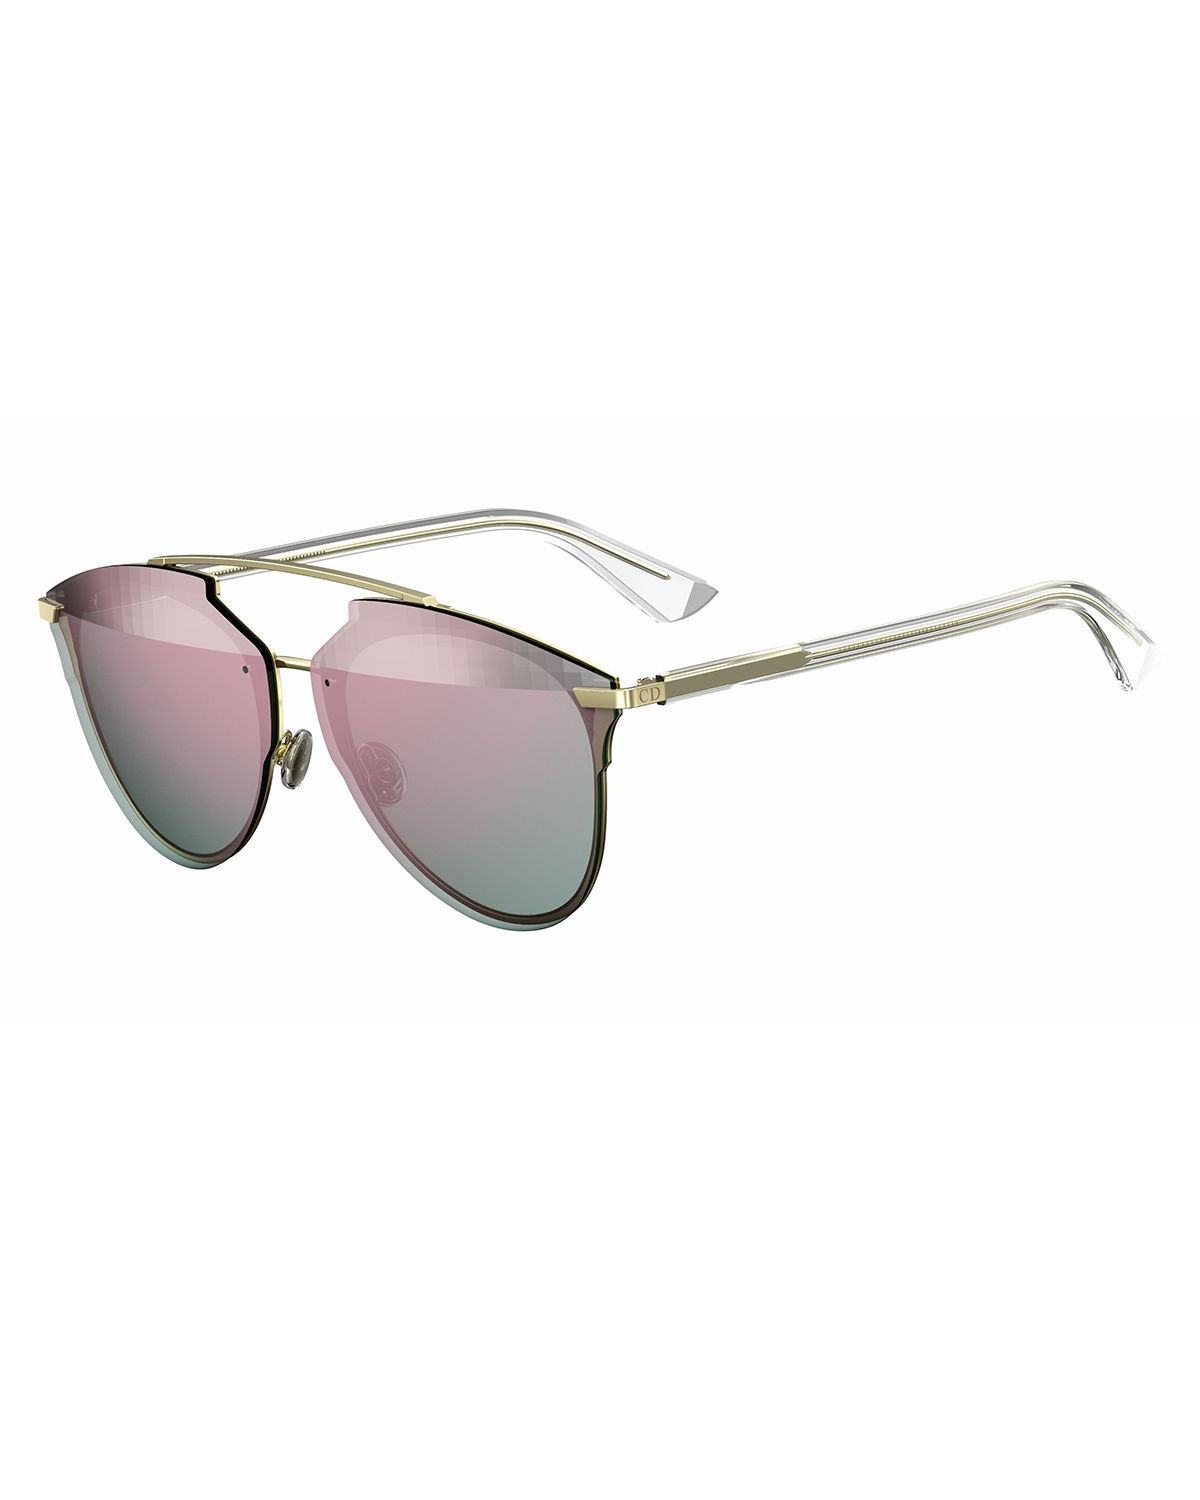 0c363918166 Dior Reflected Prism Aviator Sunglasses In Pink